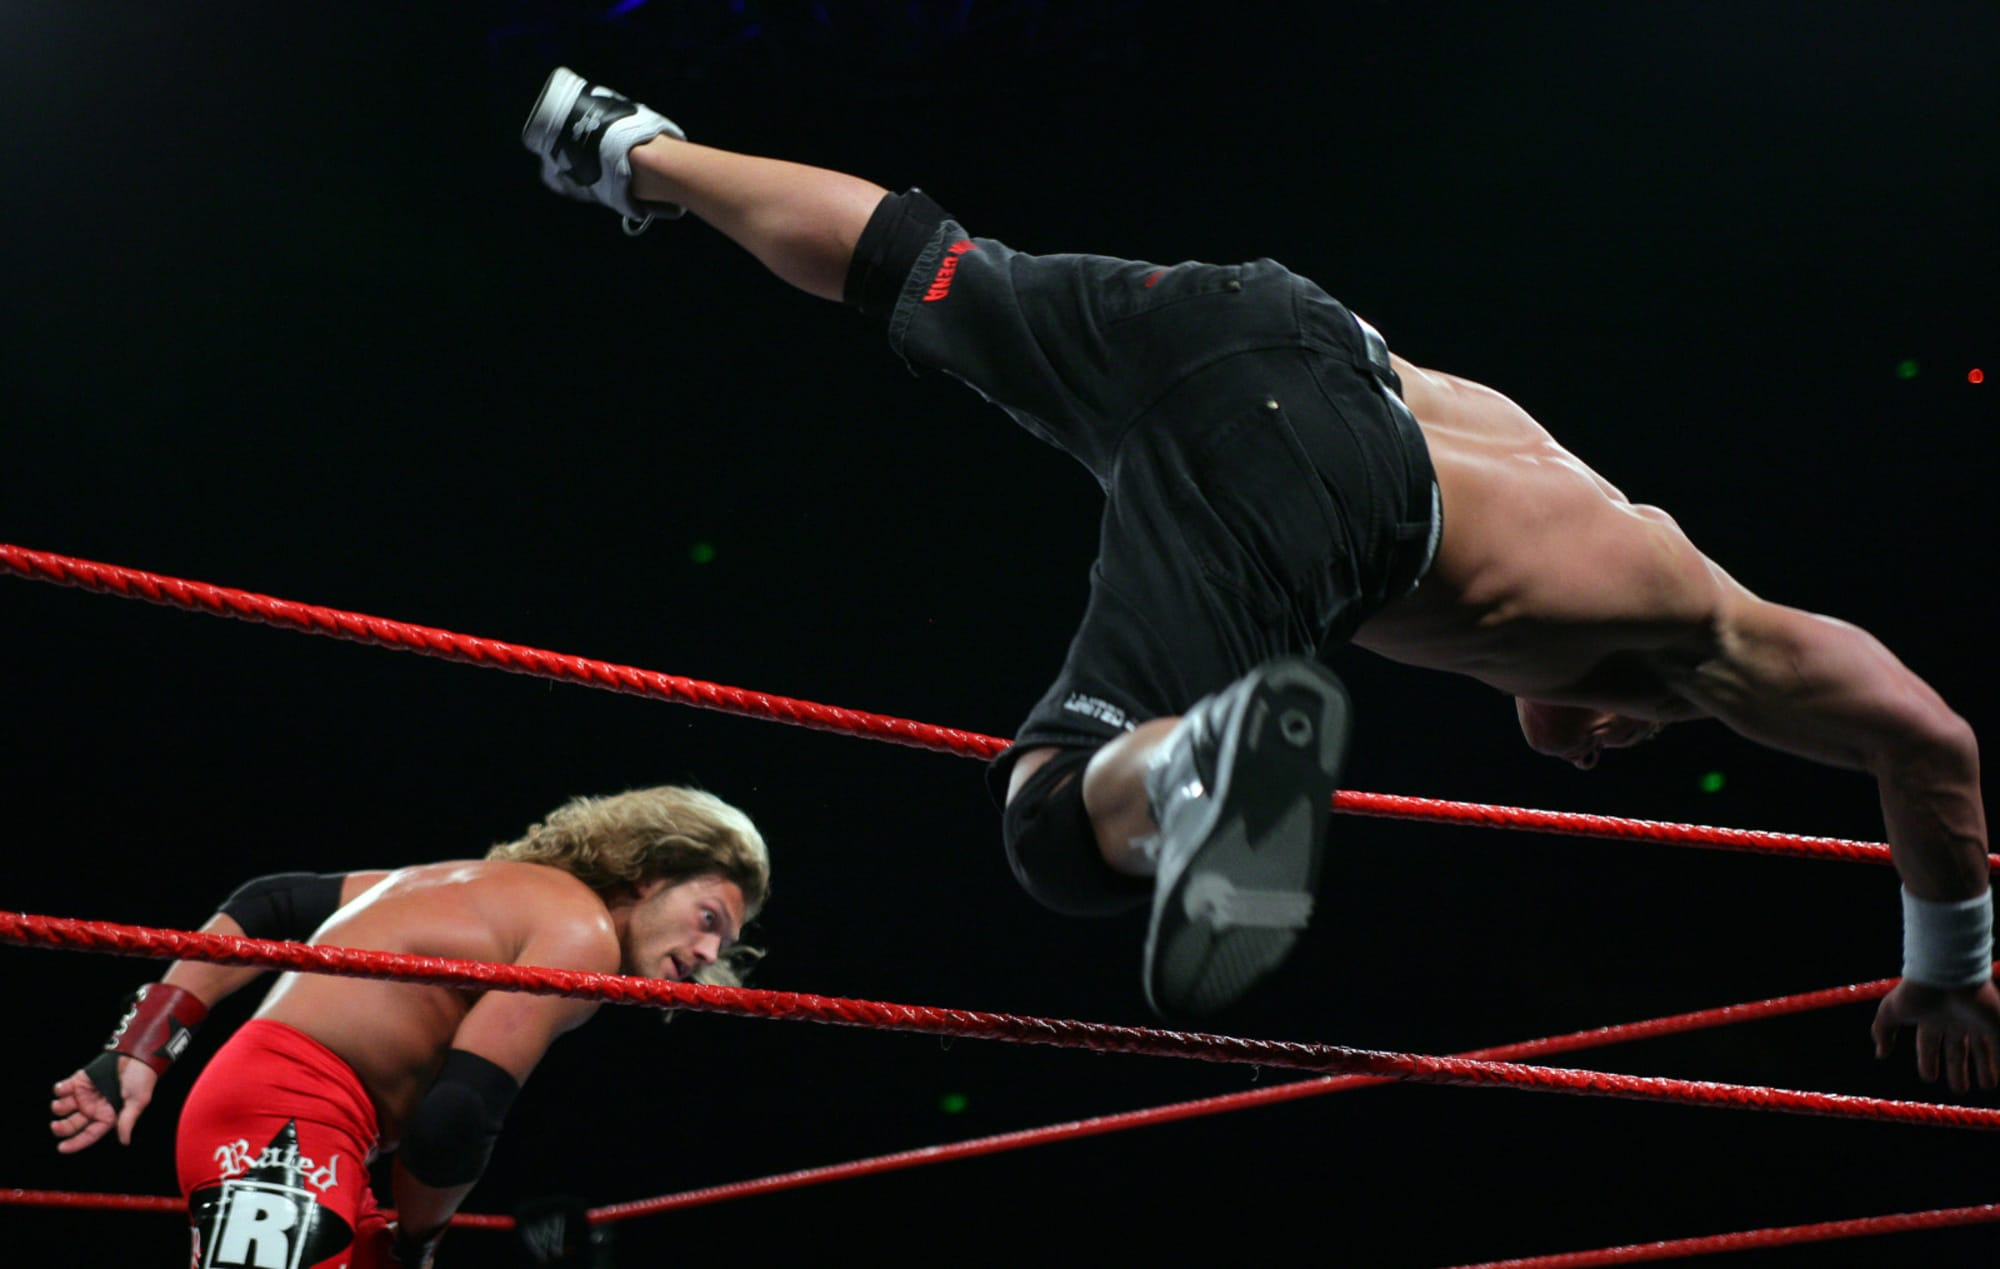 Edge to return in the 2021 Royal Rumble